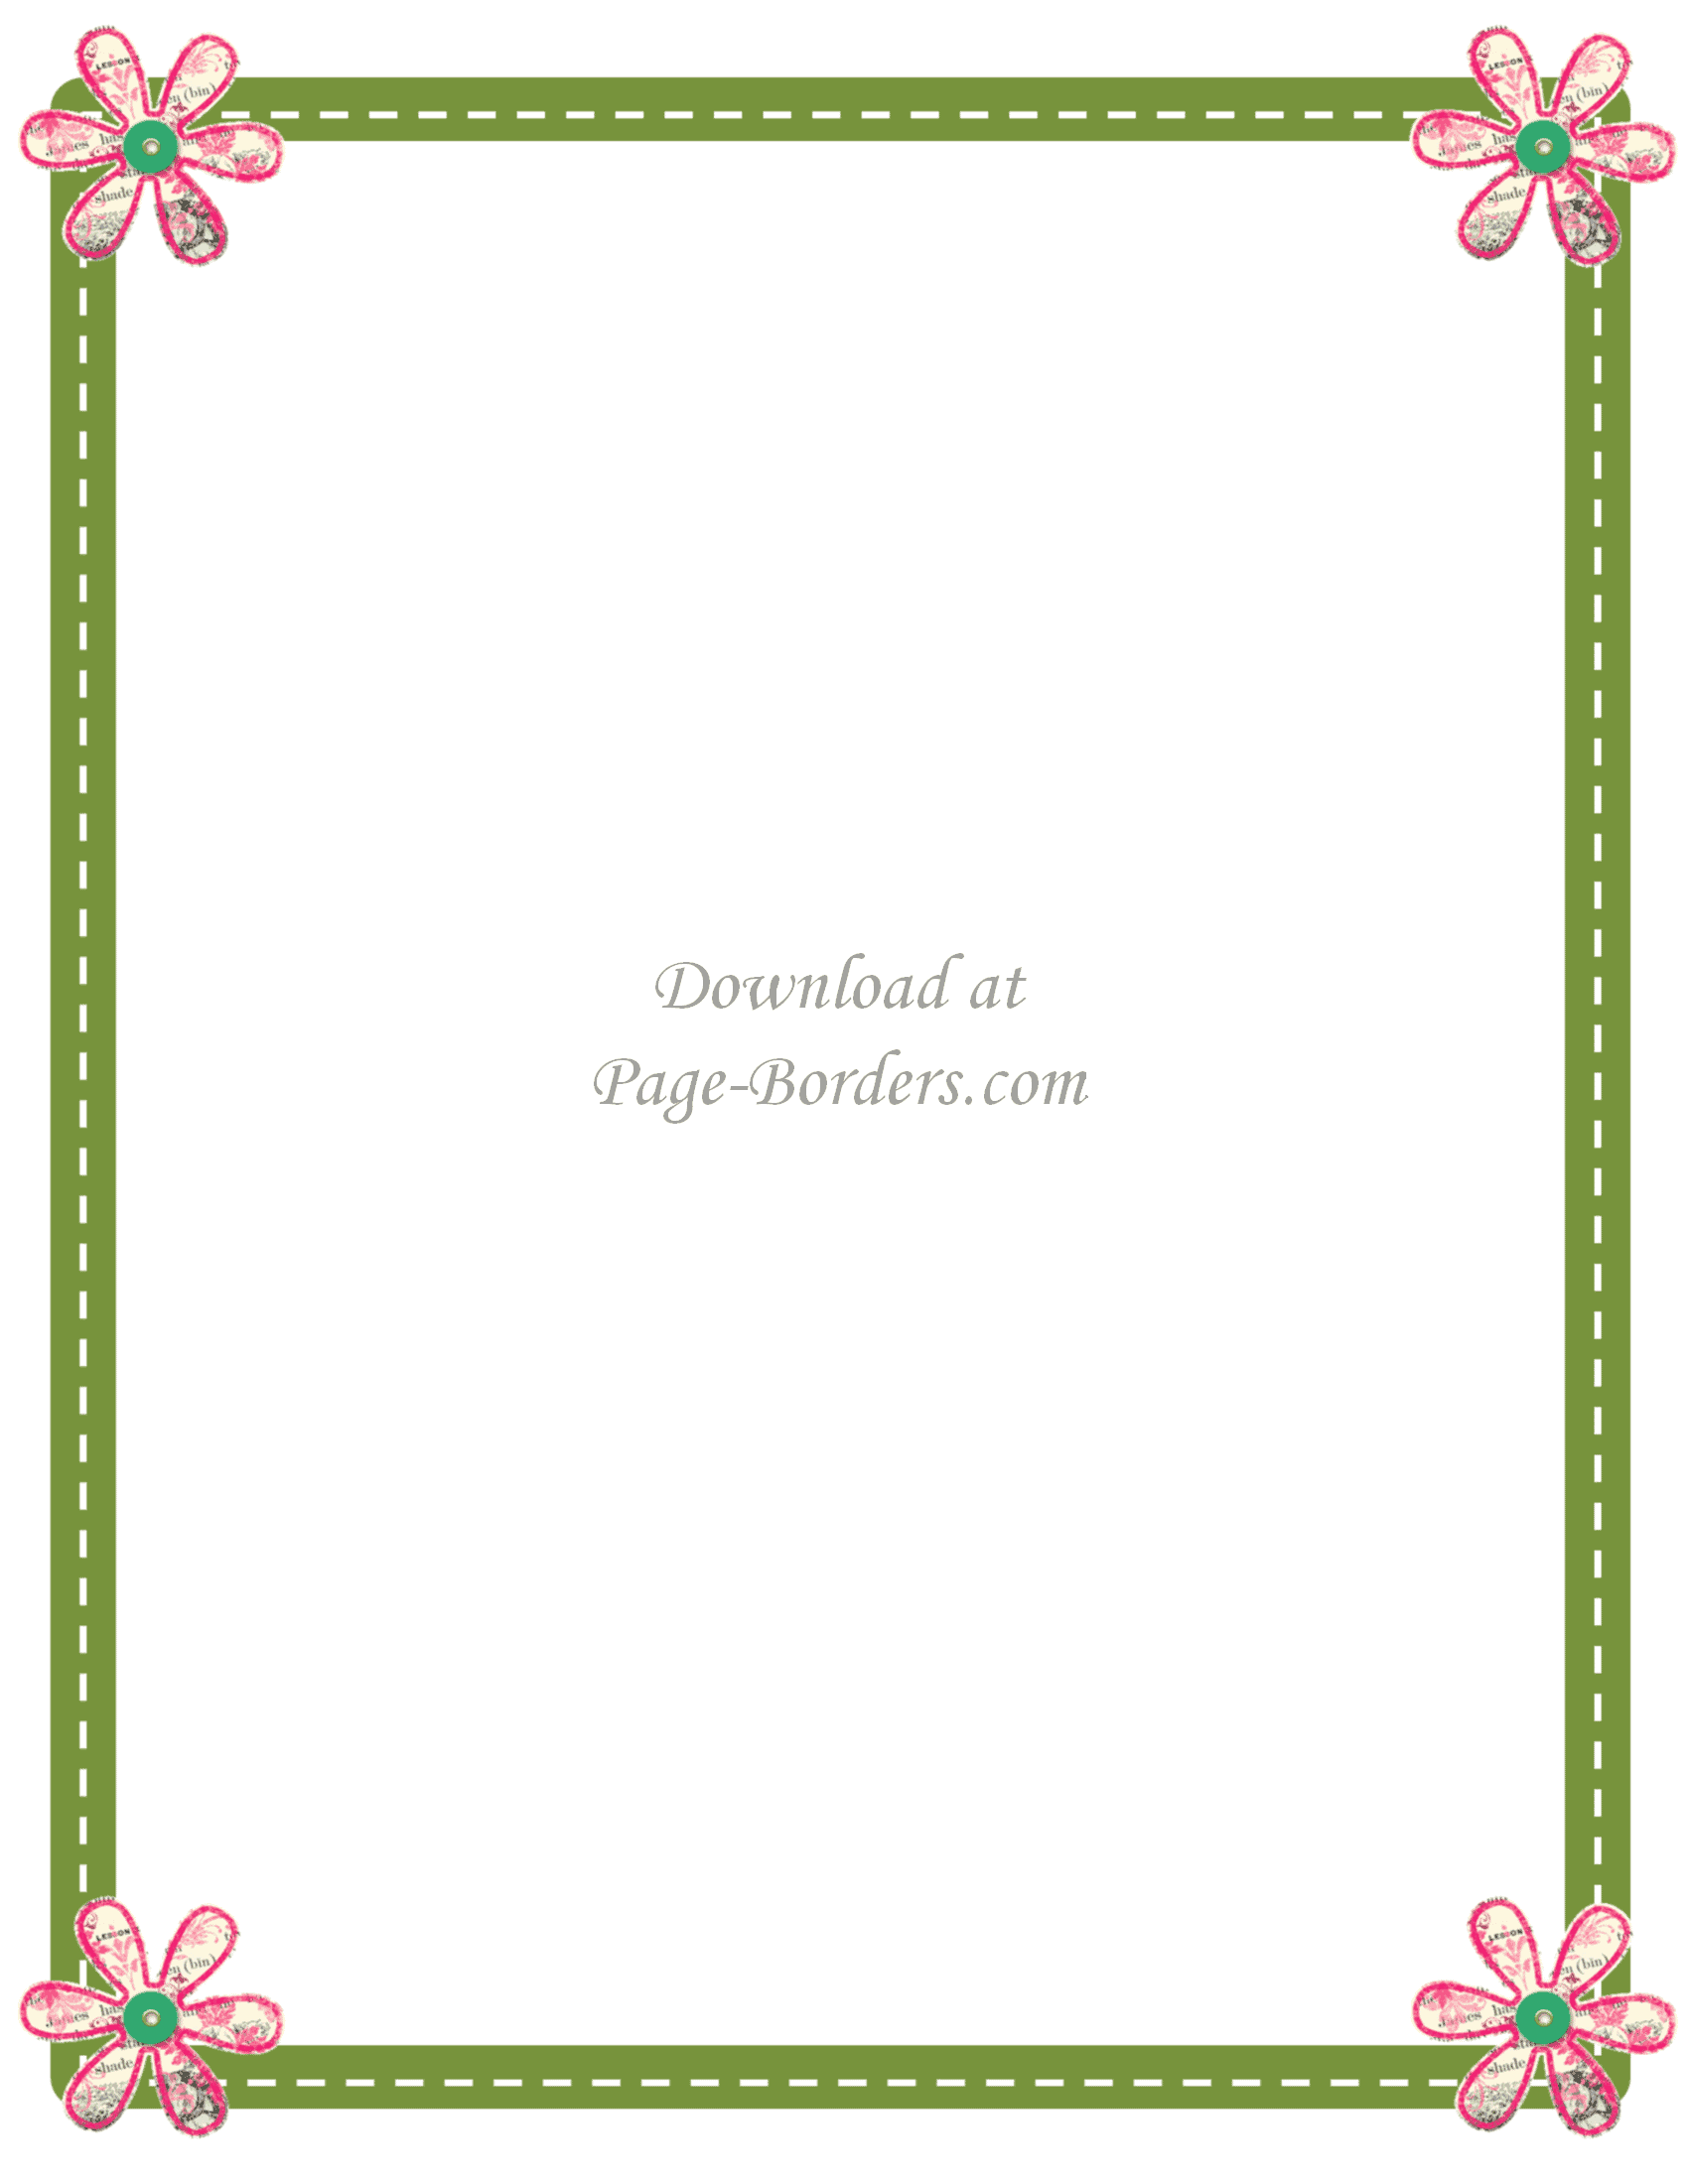 green page border with pink flowers